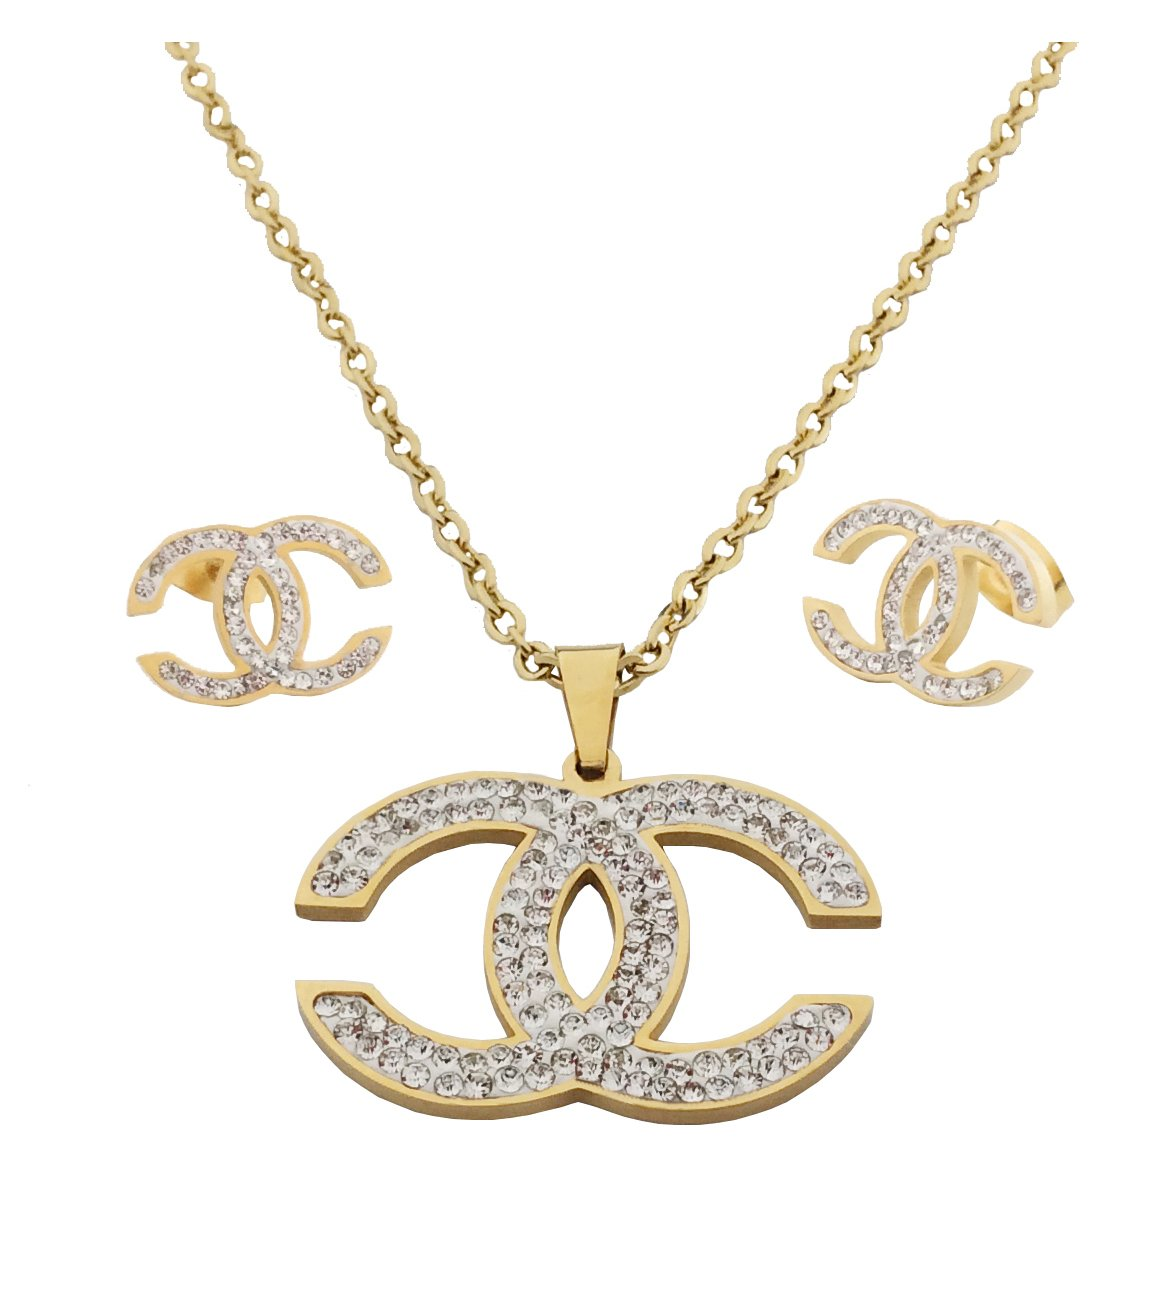 PAPAGALO Stainless Steel Jewelry Set for Women (PP207)